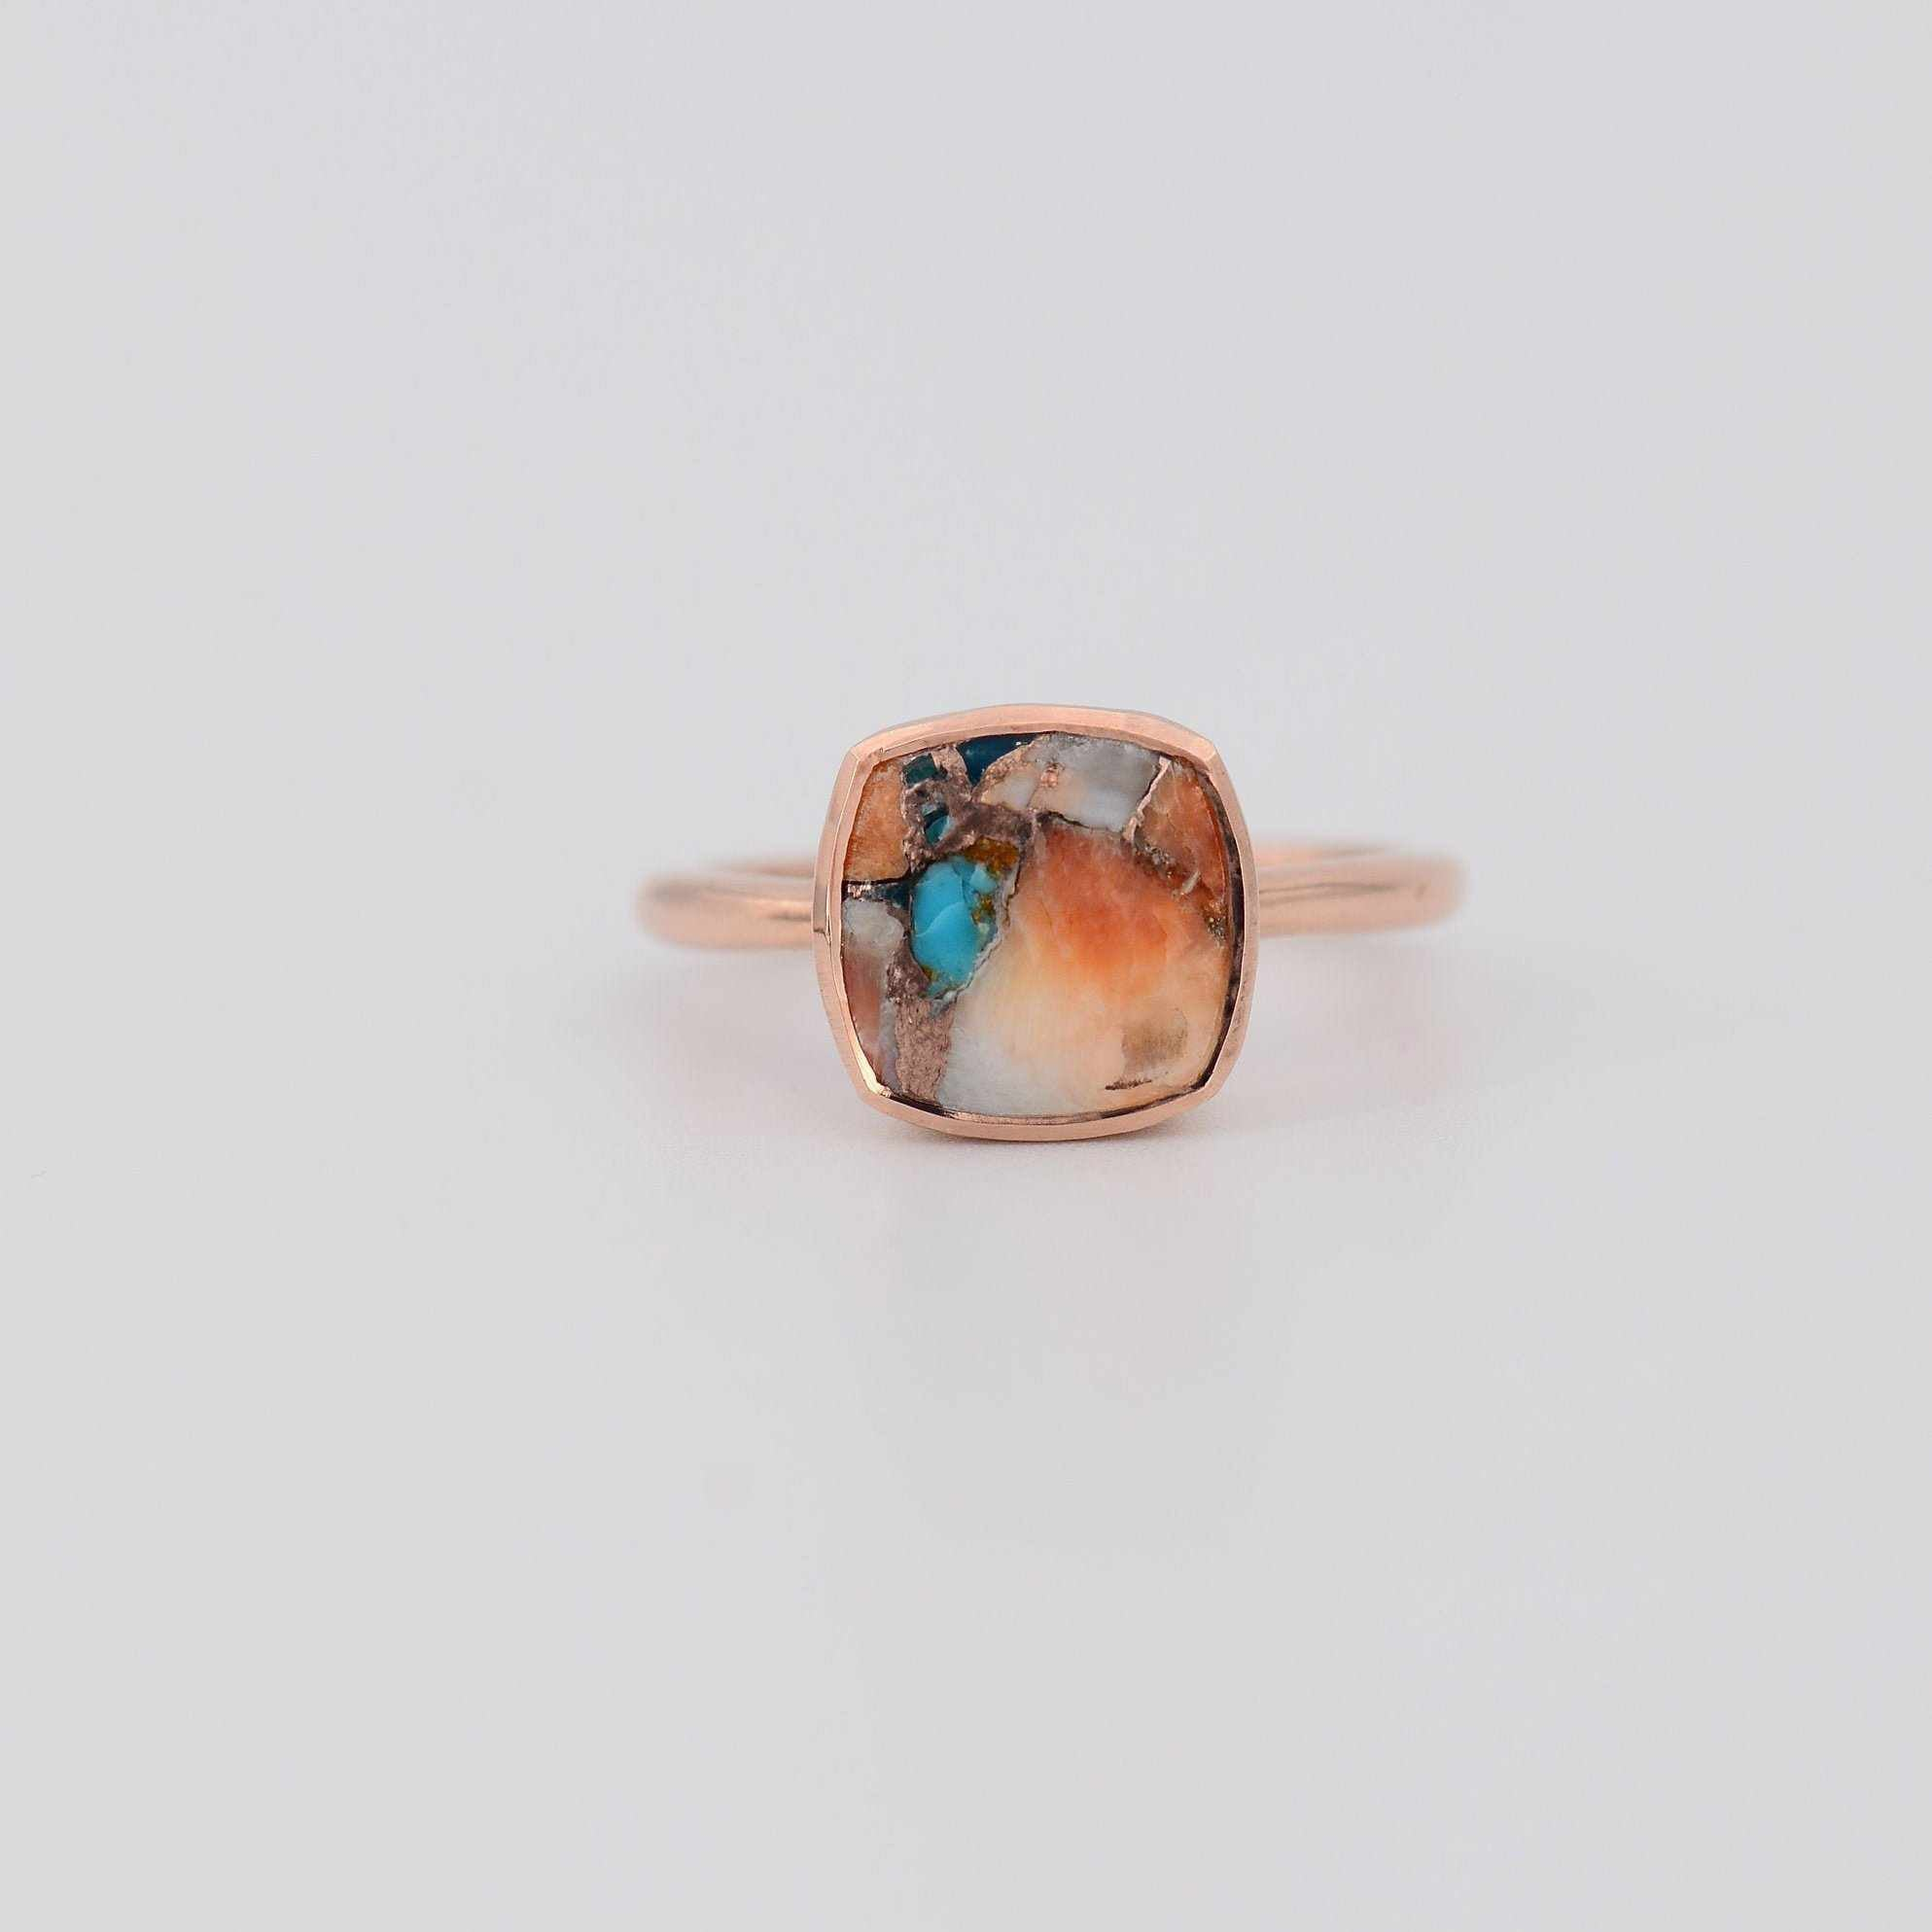 Turquoise Ring, Pink Opal Copper Turquoise ring, Mother's day gift for her, Cushion Ring, Turquoise Gemstone Ring, 925 Sterling silver Ring